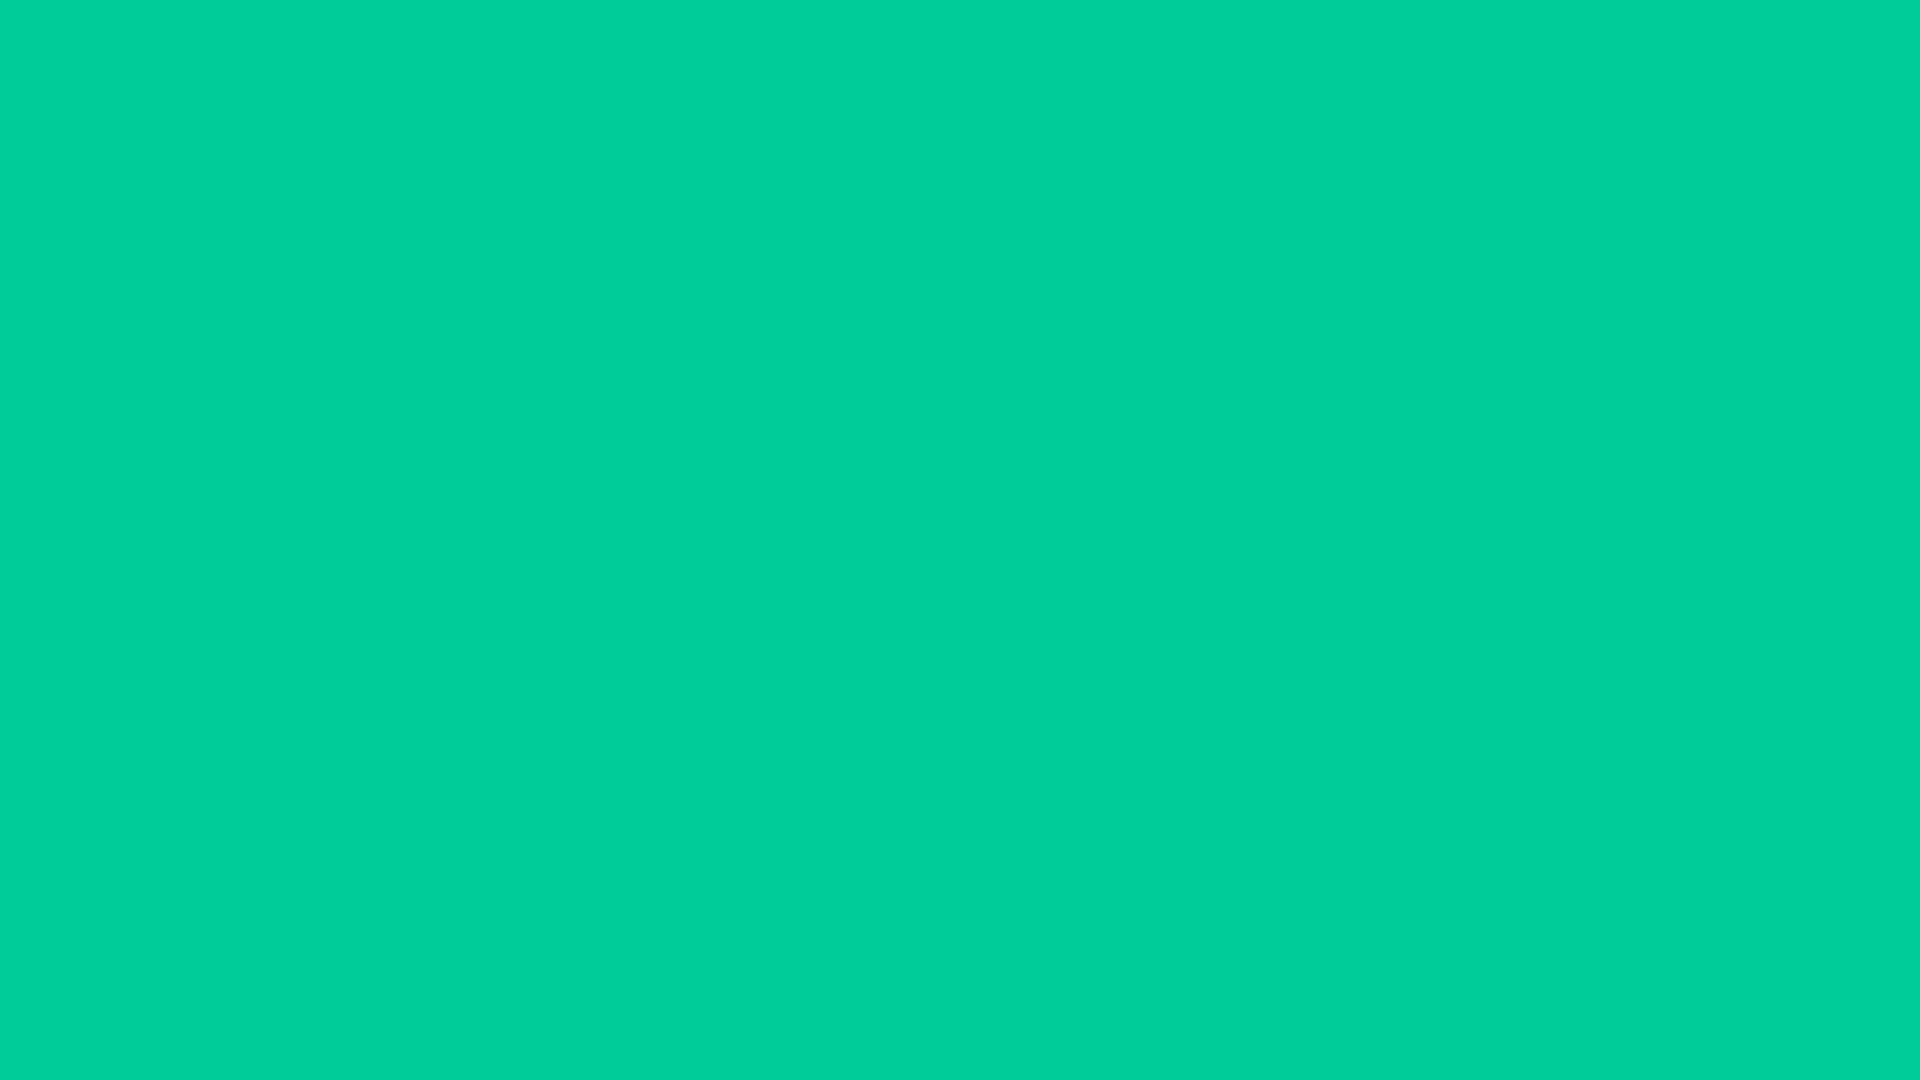 1920x1080 Caribbean Green Solid Color Background